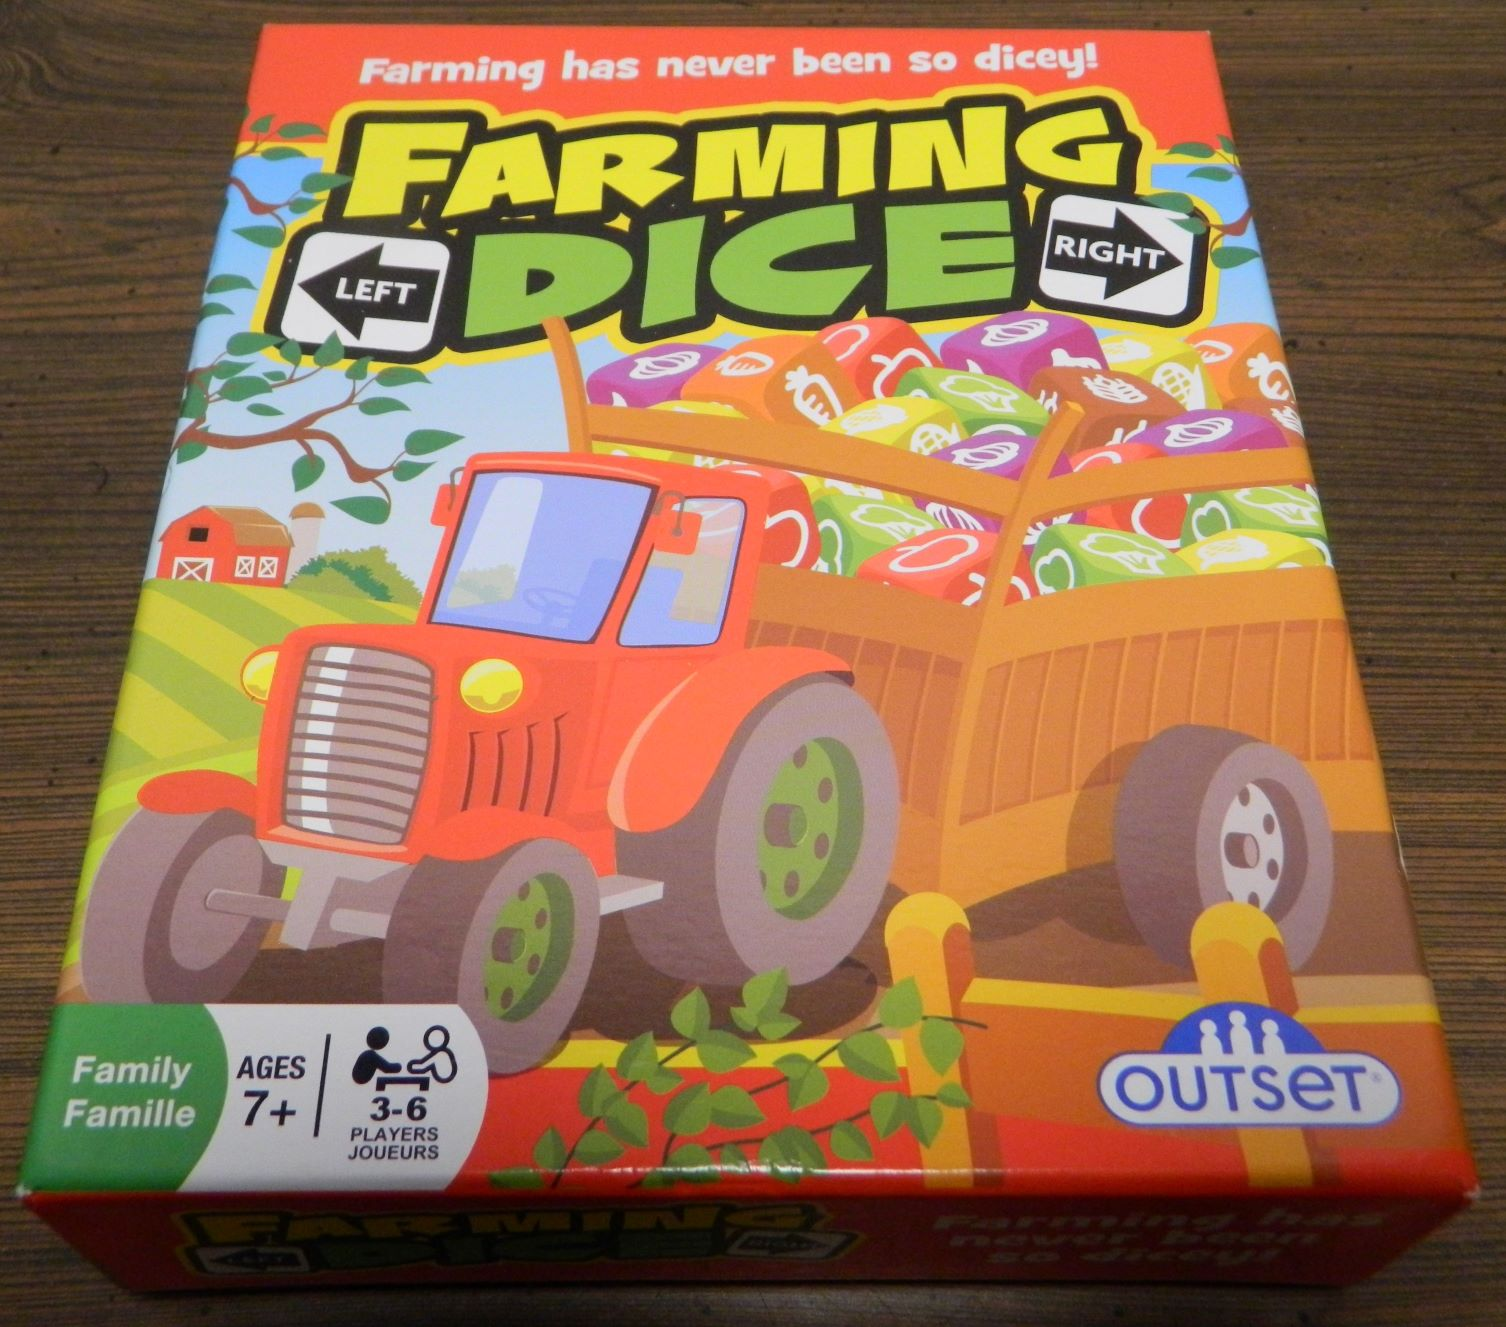 Box for Farming Dice